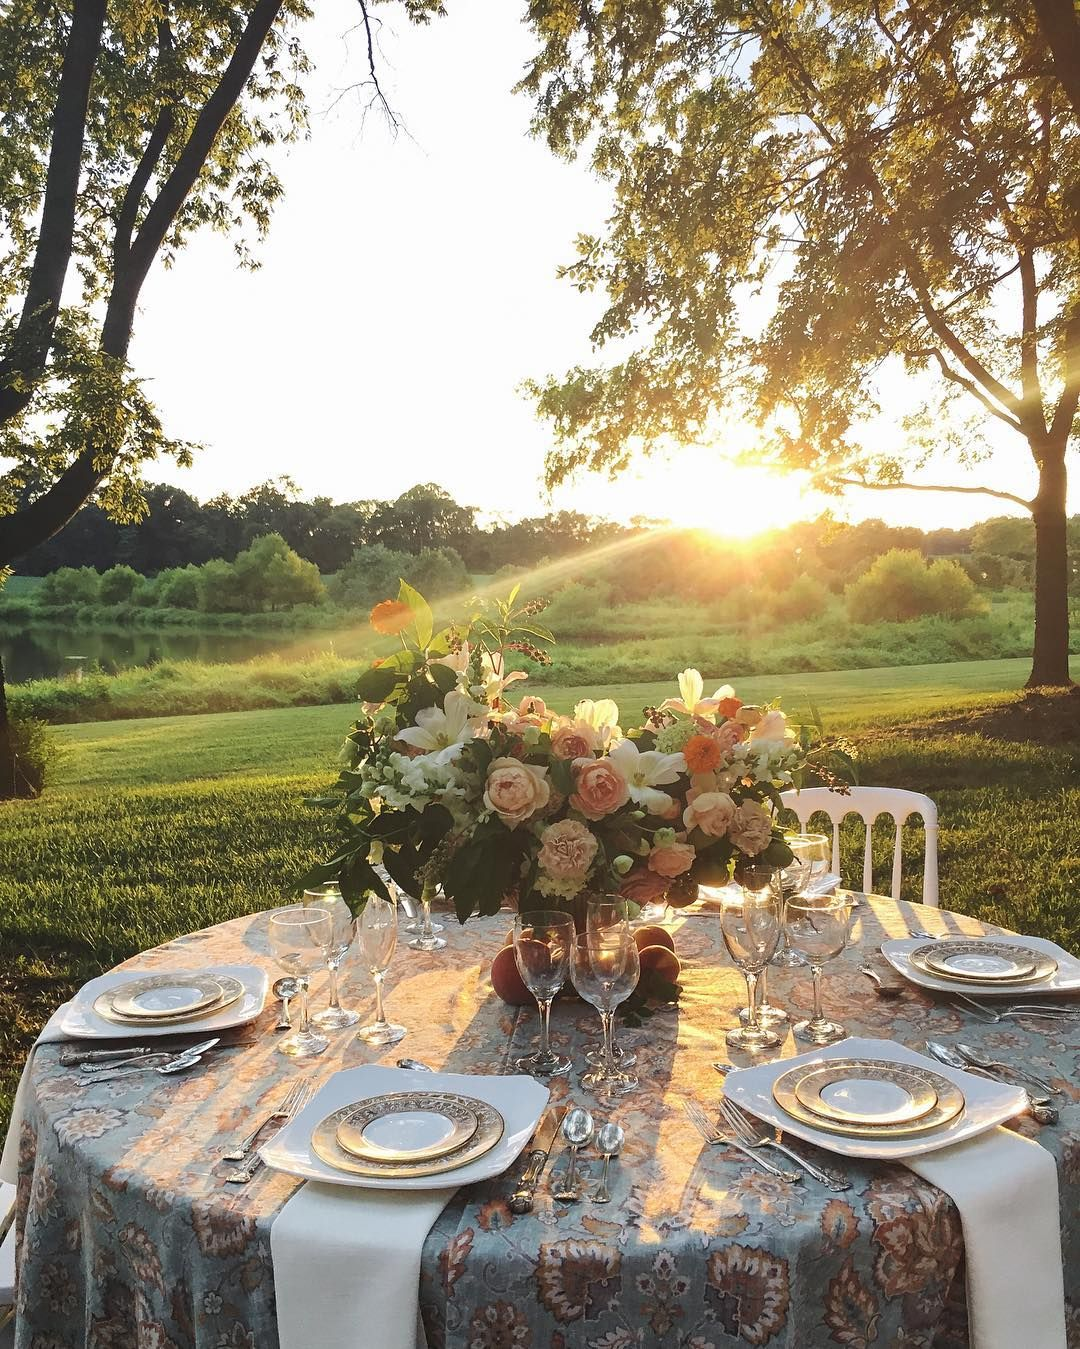 Glorious end to a beautiful day enjoying the fruits of our labor around a table of friends with wine and great conversation and wrapped in the best hug of a sunset. Cheers team! @presquisle @angelanewtonroyphotography @bellagiornataevents @freshconnectionscatering  #wildgreenyonder #centerpiece #sunset #visitvirginia #darlingweekend #soloverly #scenery #goldenhour #flowers #liveauthentic #weddingvenue #weddinginspiration #alfresco #tabletop